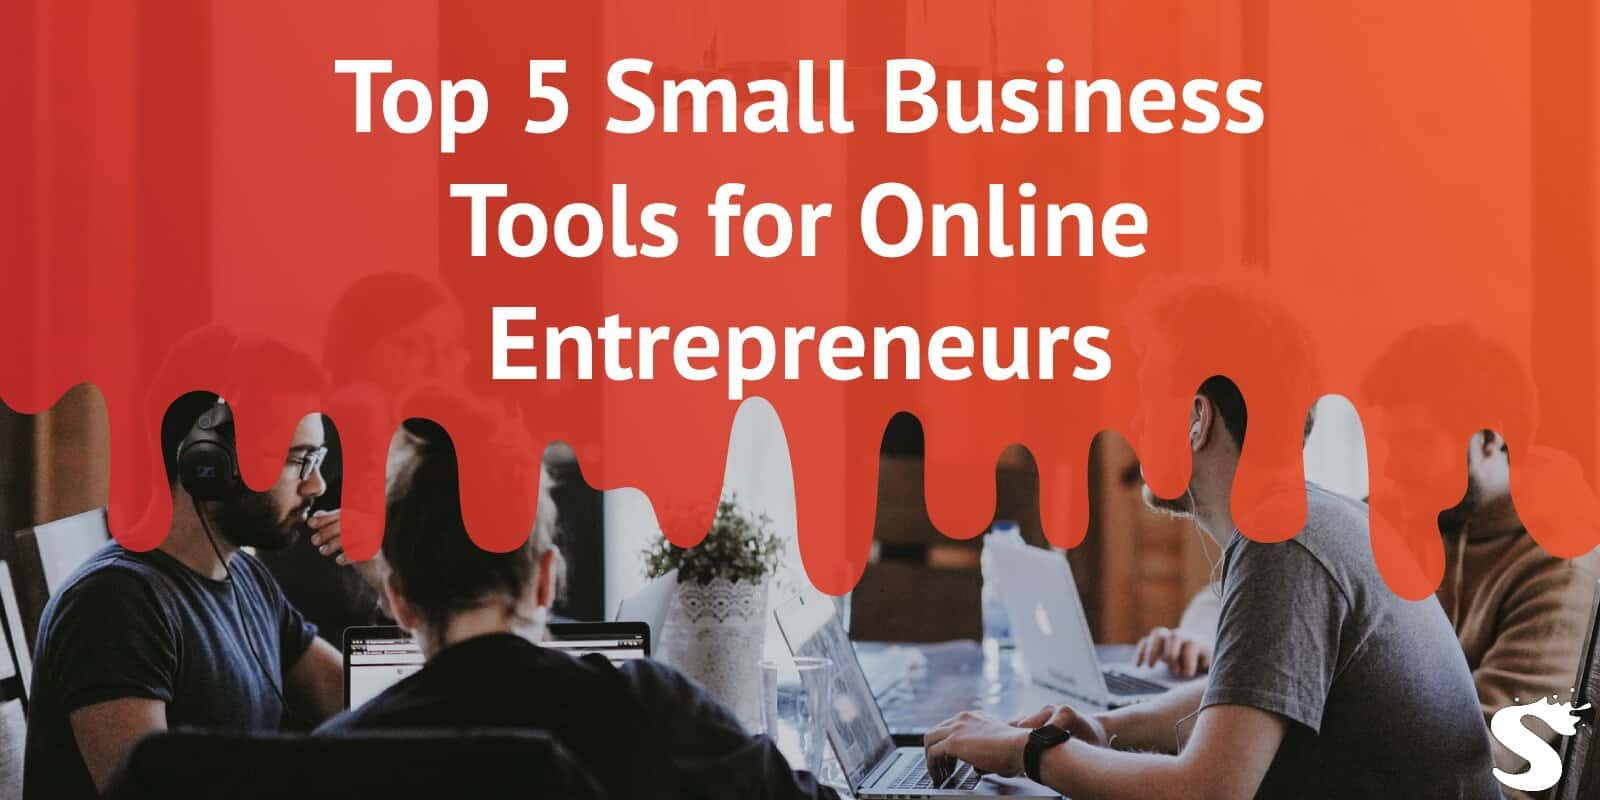 Top 5 Small Business Tools for Online Entrepreneurs